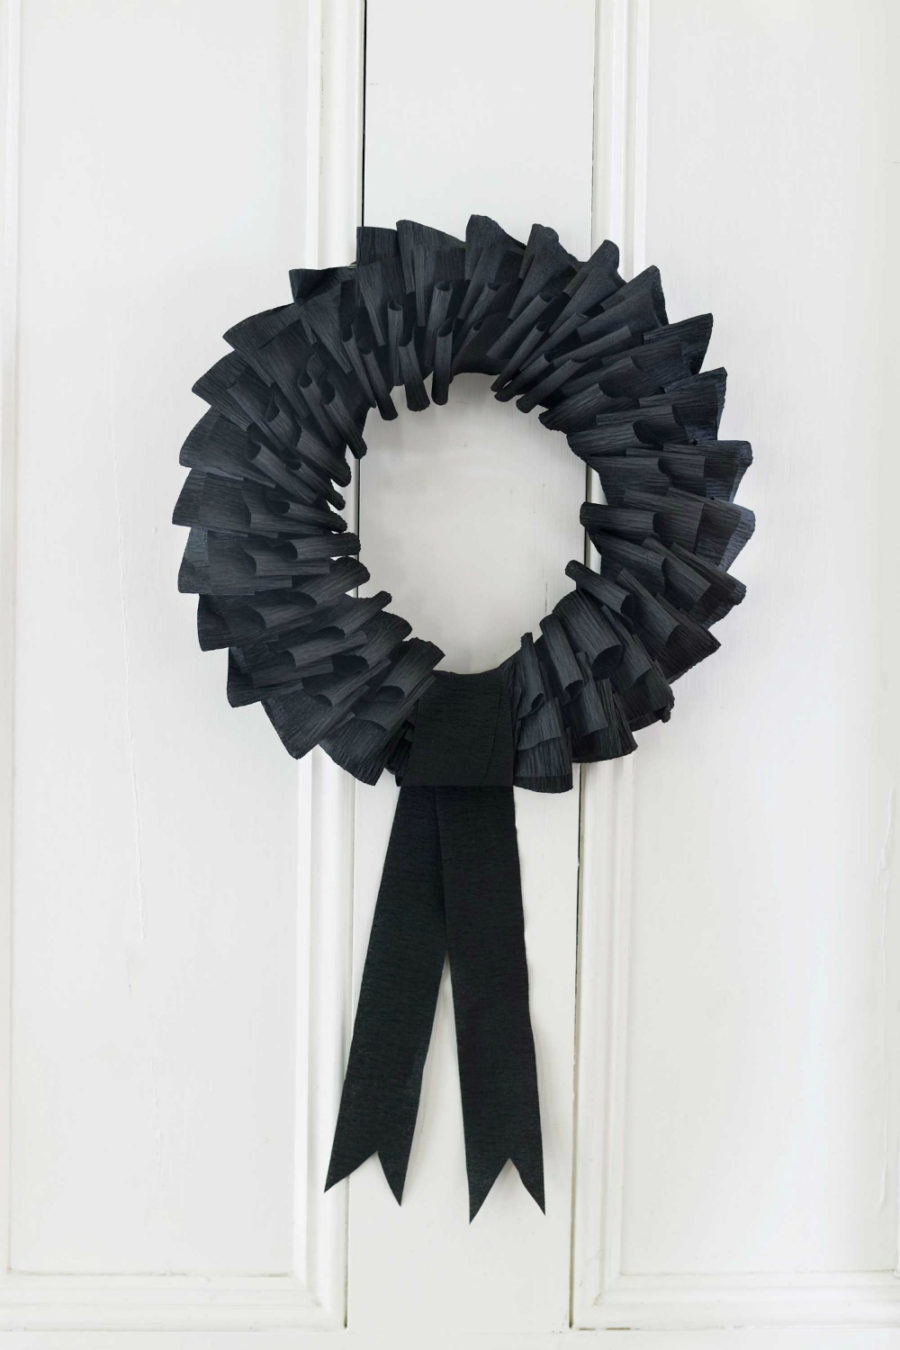 Creepy Crepe-Paper Wreath